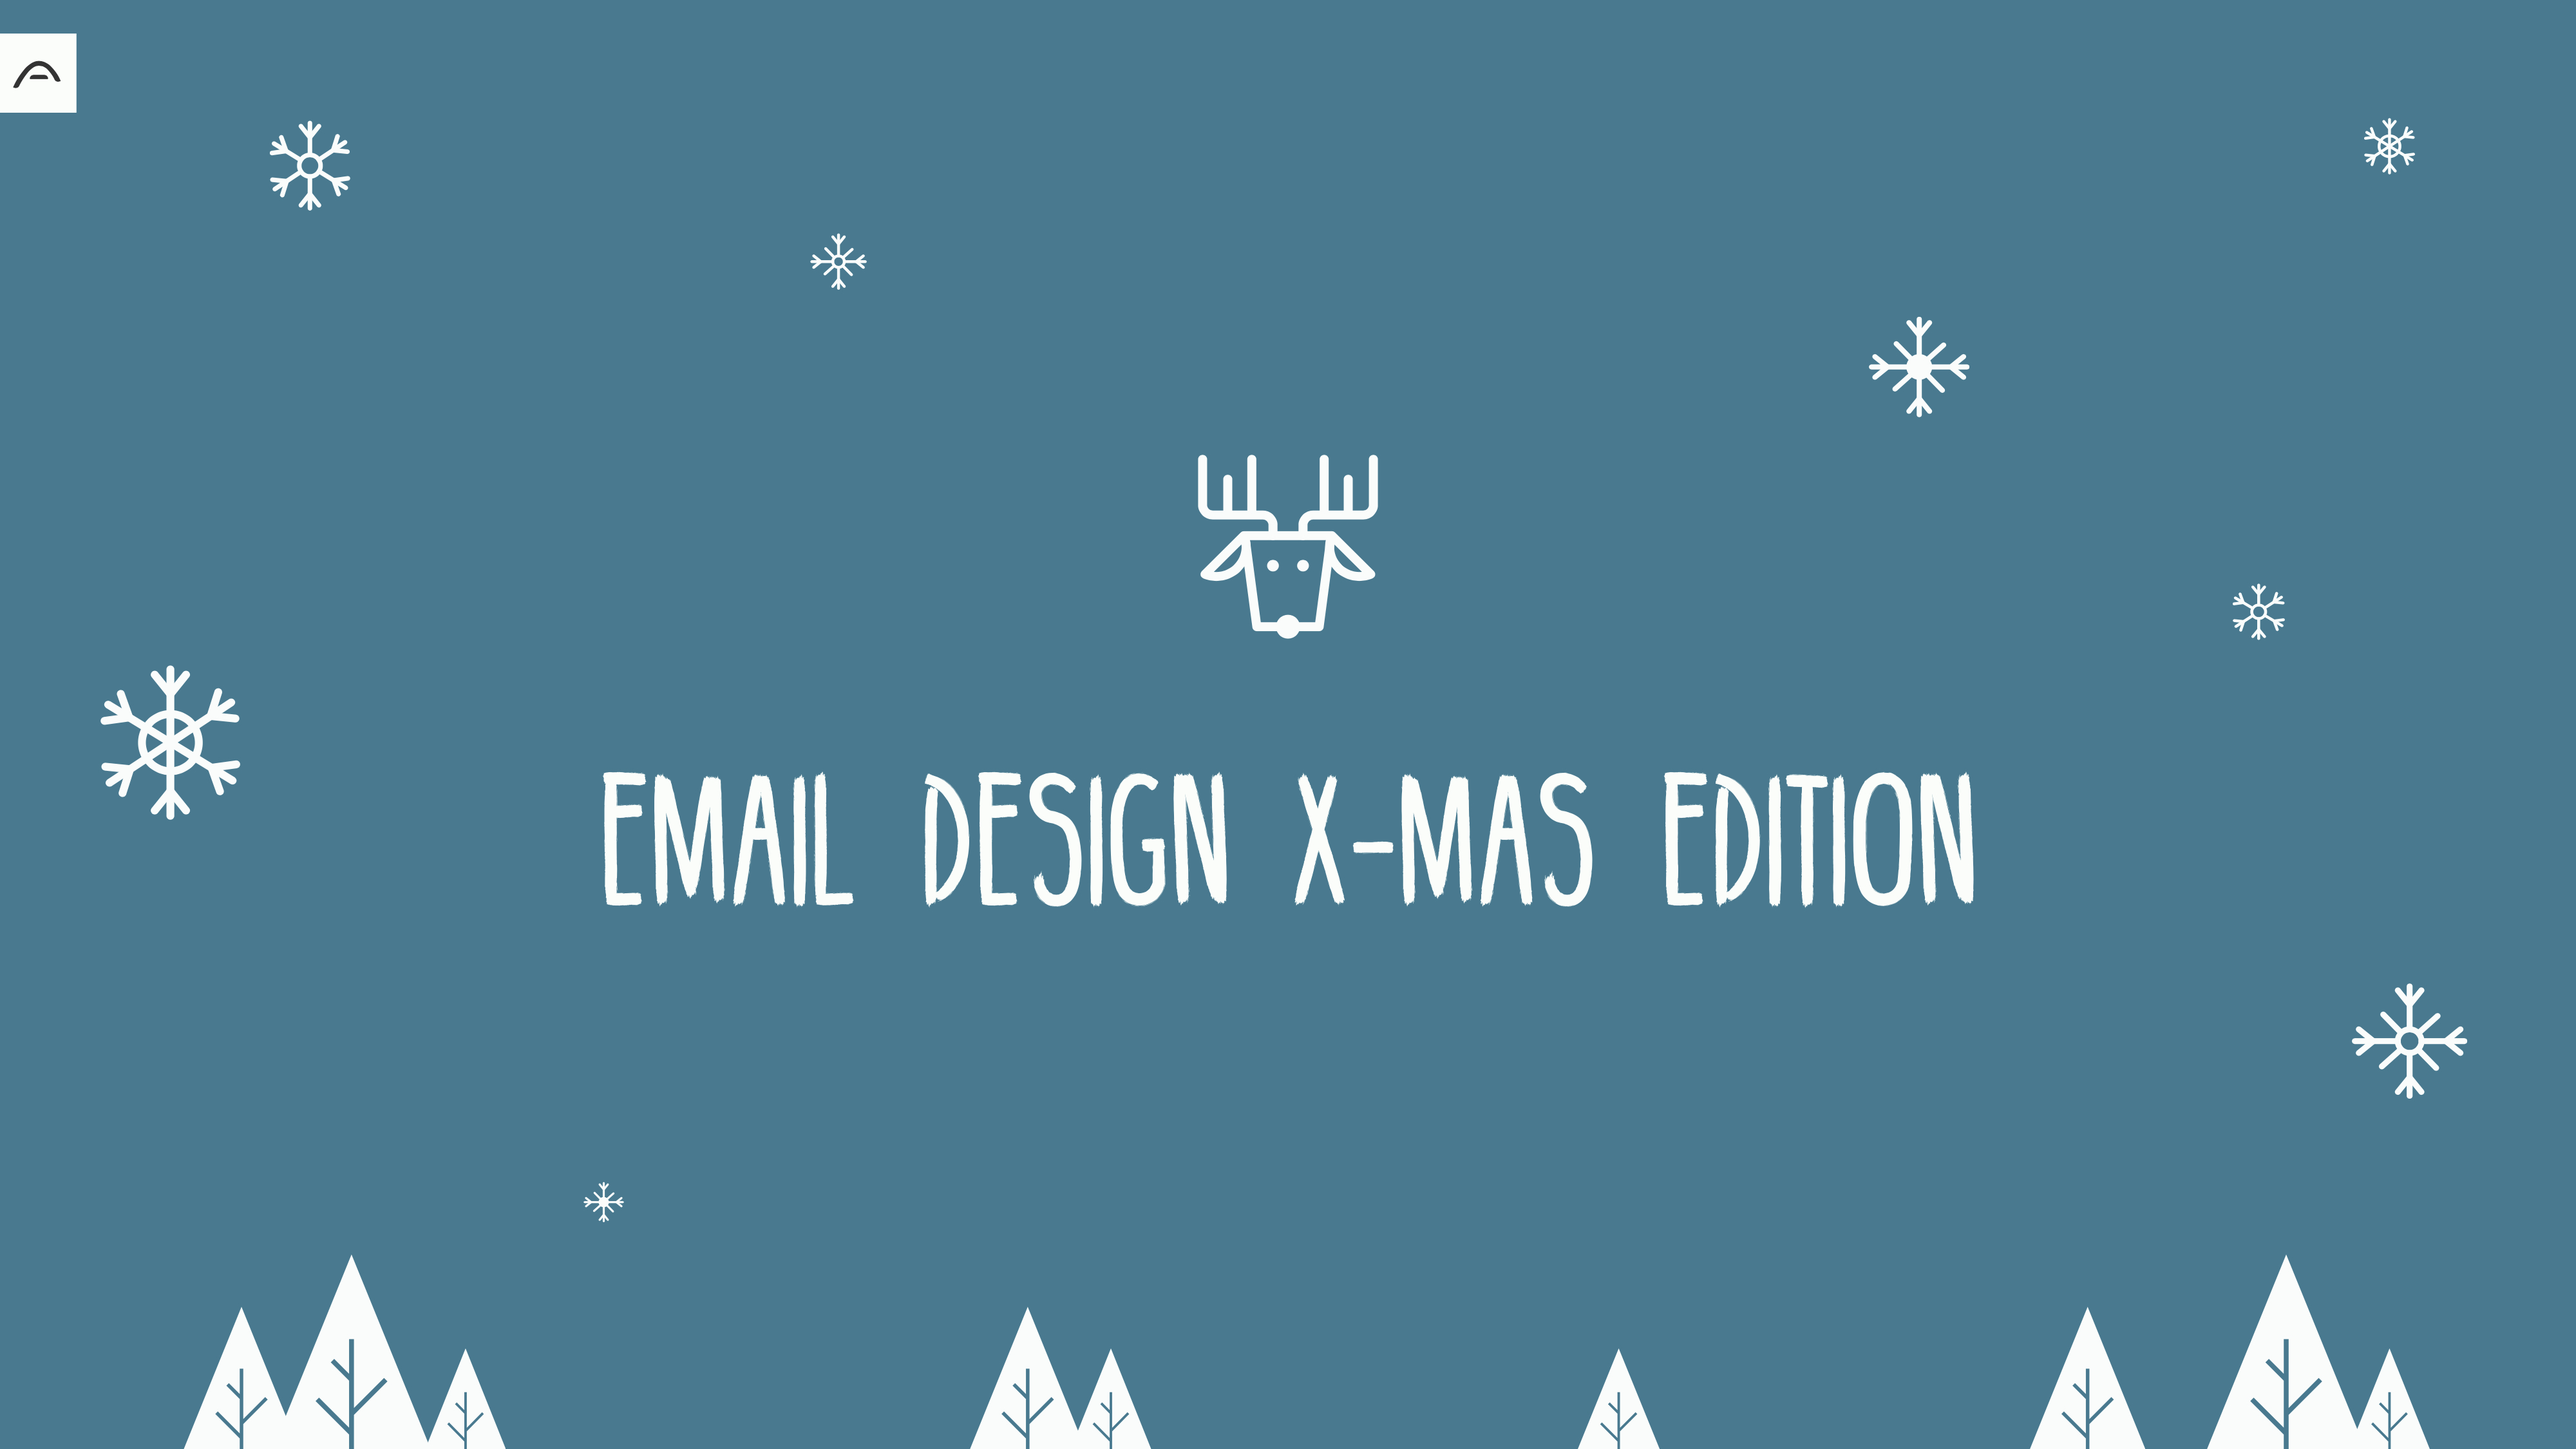 Email Design Hands-On Tips